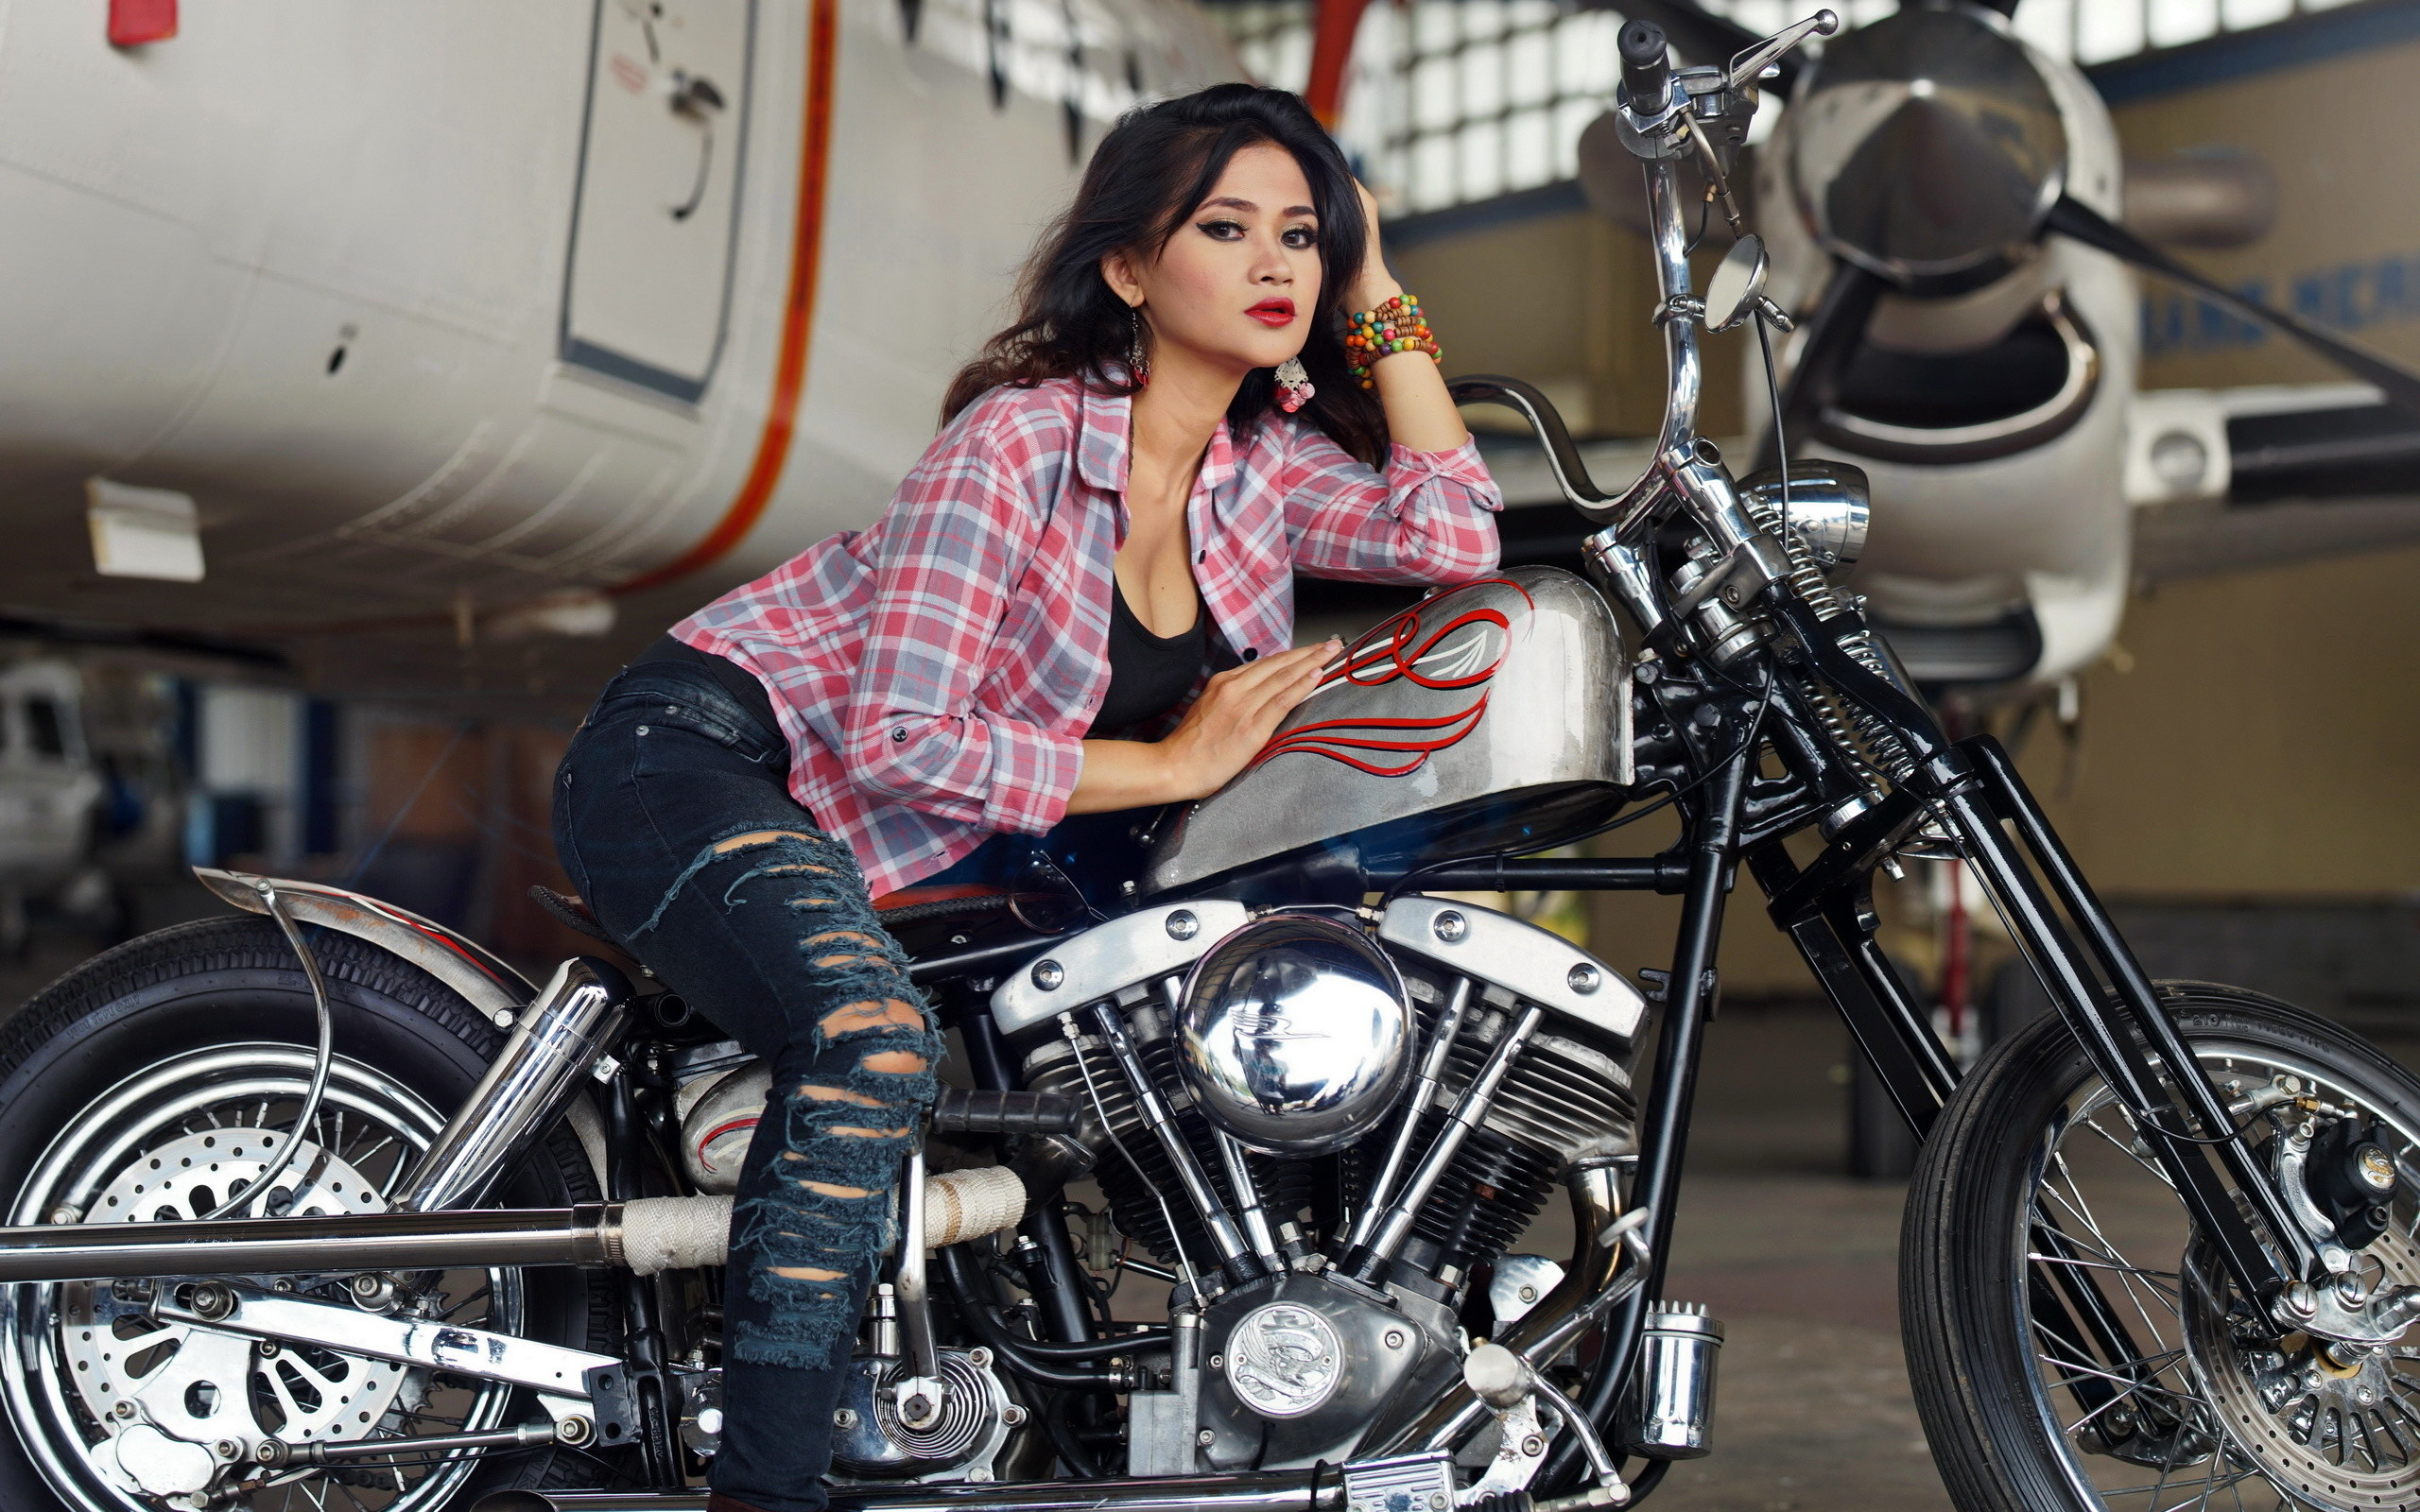 Photo Girls Motorcycles Formal shirt Jeans 2560×1600